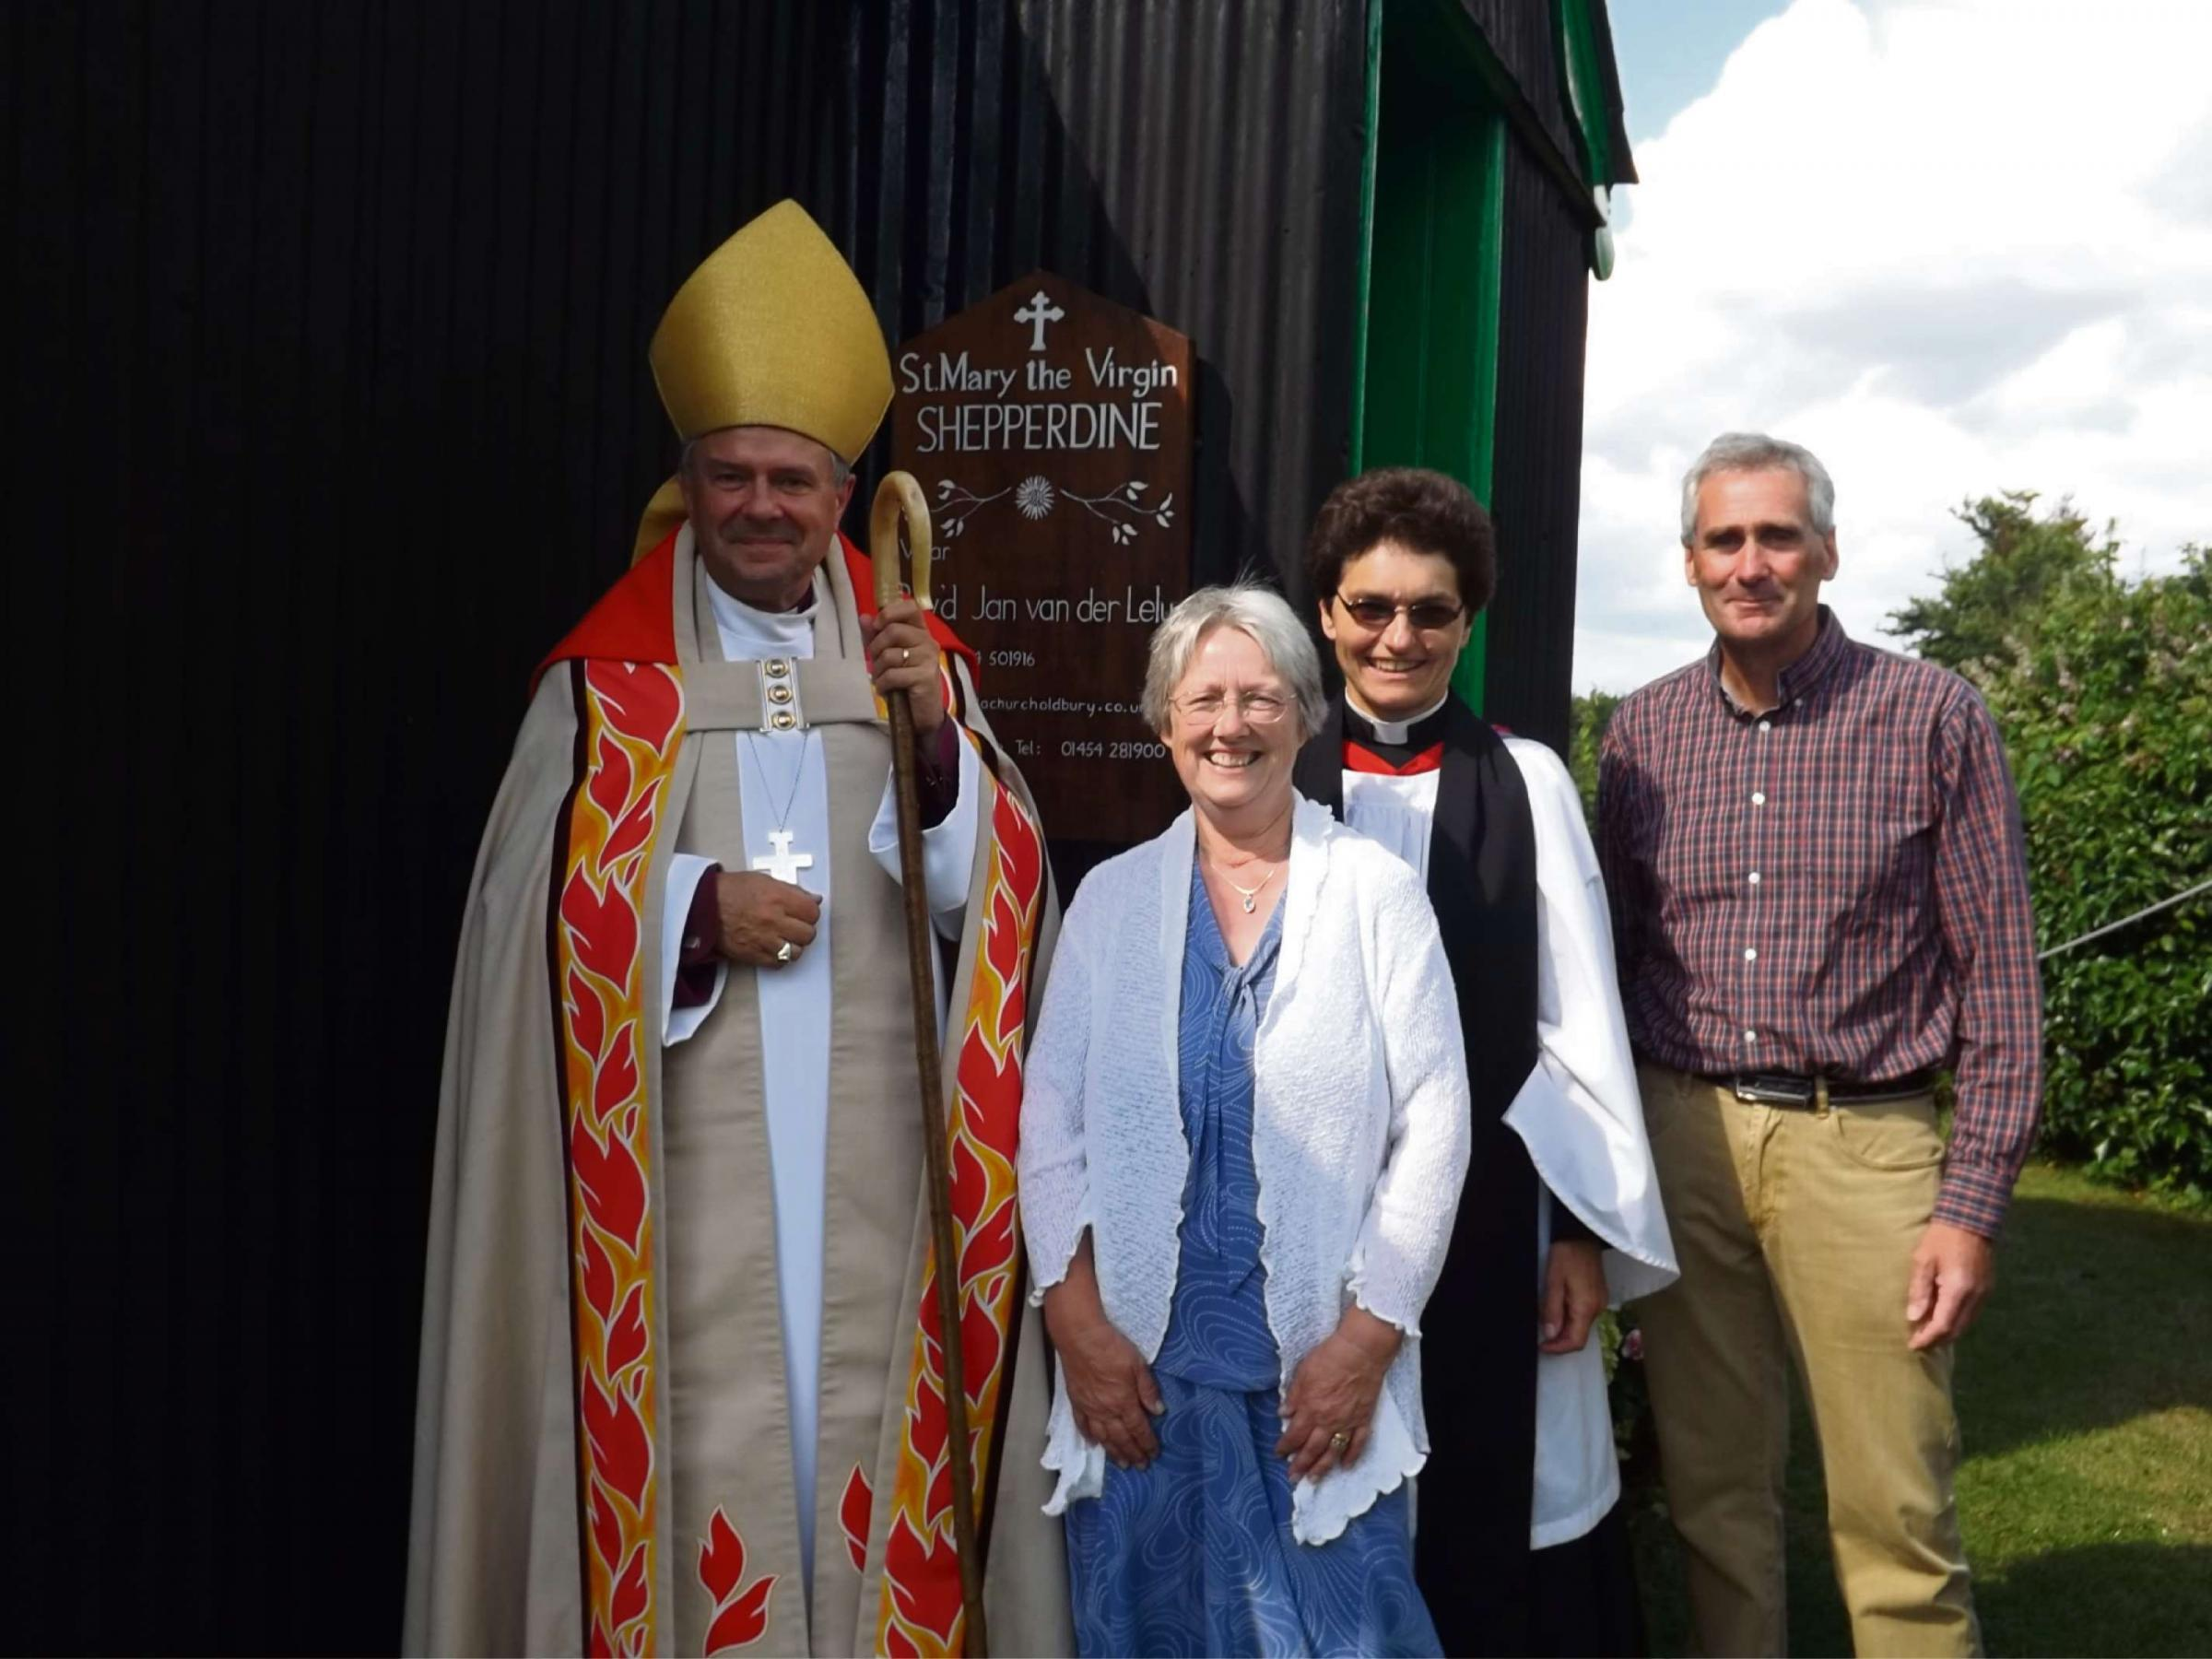 The Bishop of Gloucester, the Right Rev Michael Perham, with Thornbury, Oldbury and Shepperdine vicar, the Rev Jan van der Lely, Oldbury churchwarden Andrew Gazard and Sandra Grey, who looks after Shepperdine chapel.  (7922